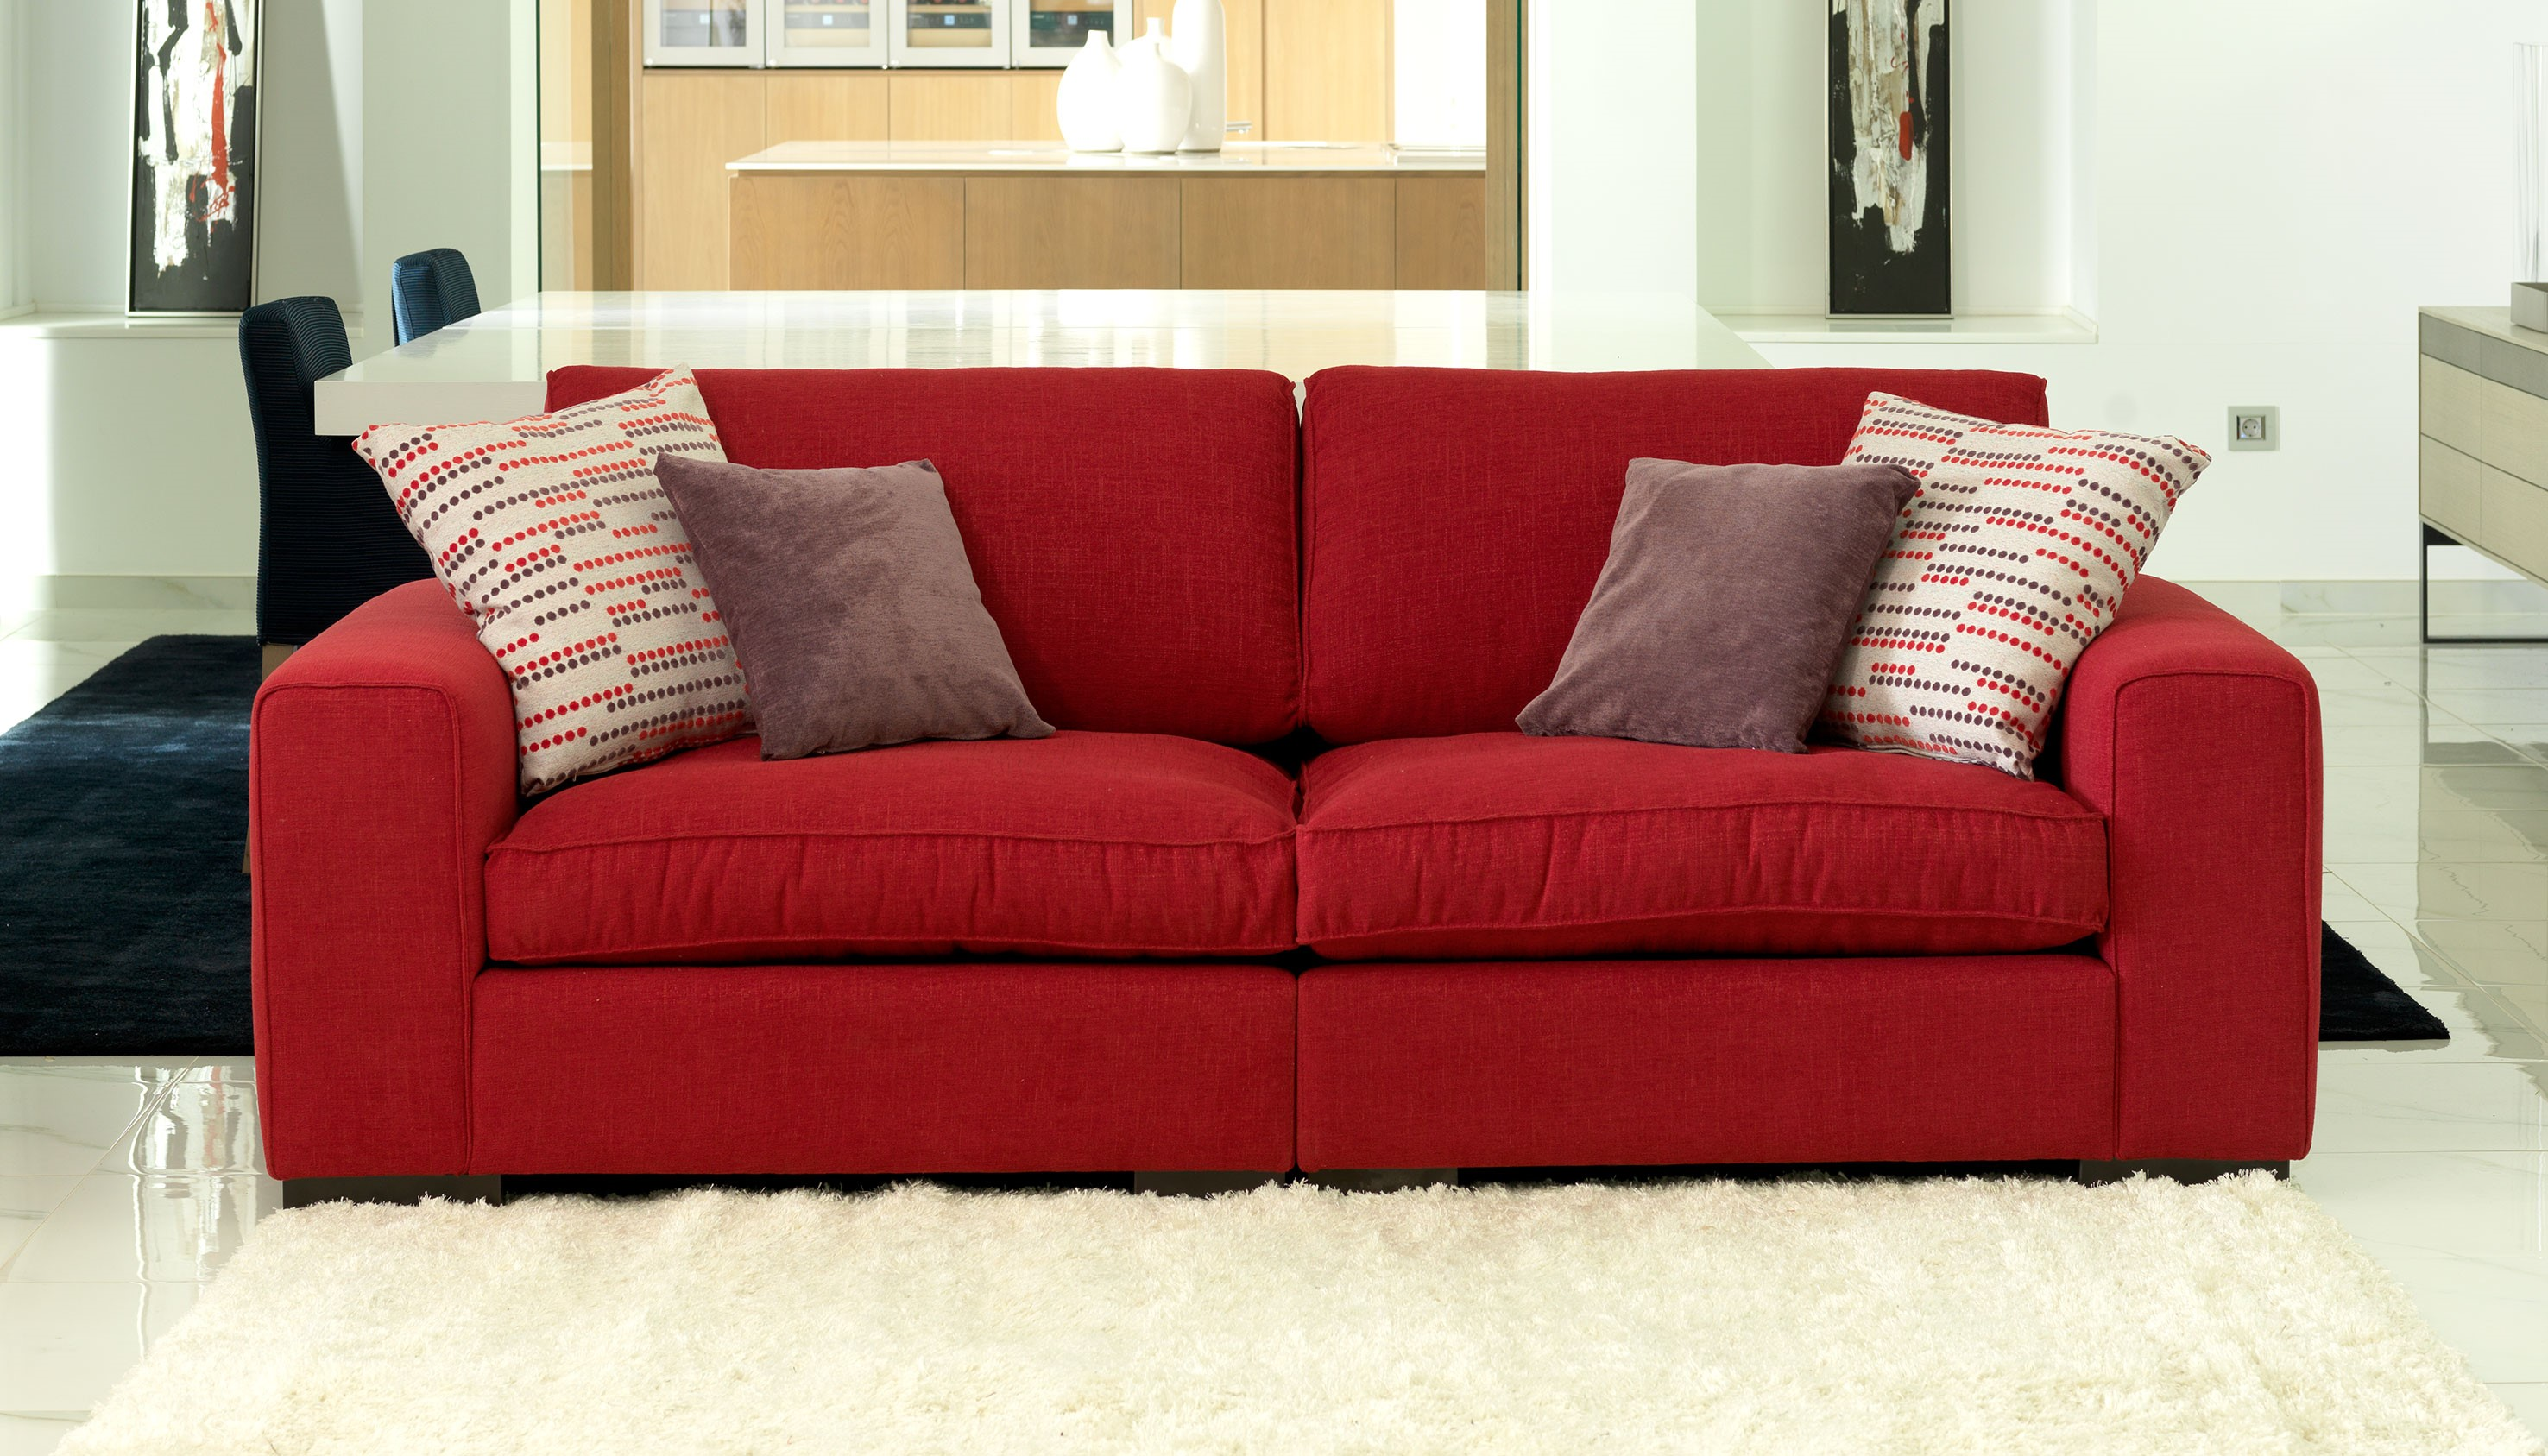 Como tapizar un sofa viejo awesome awesome great sof for Divan frances